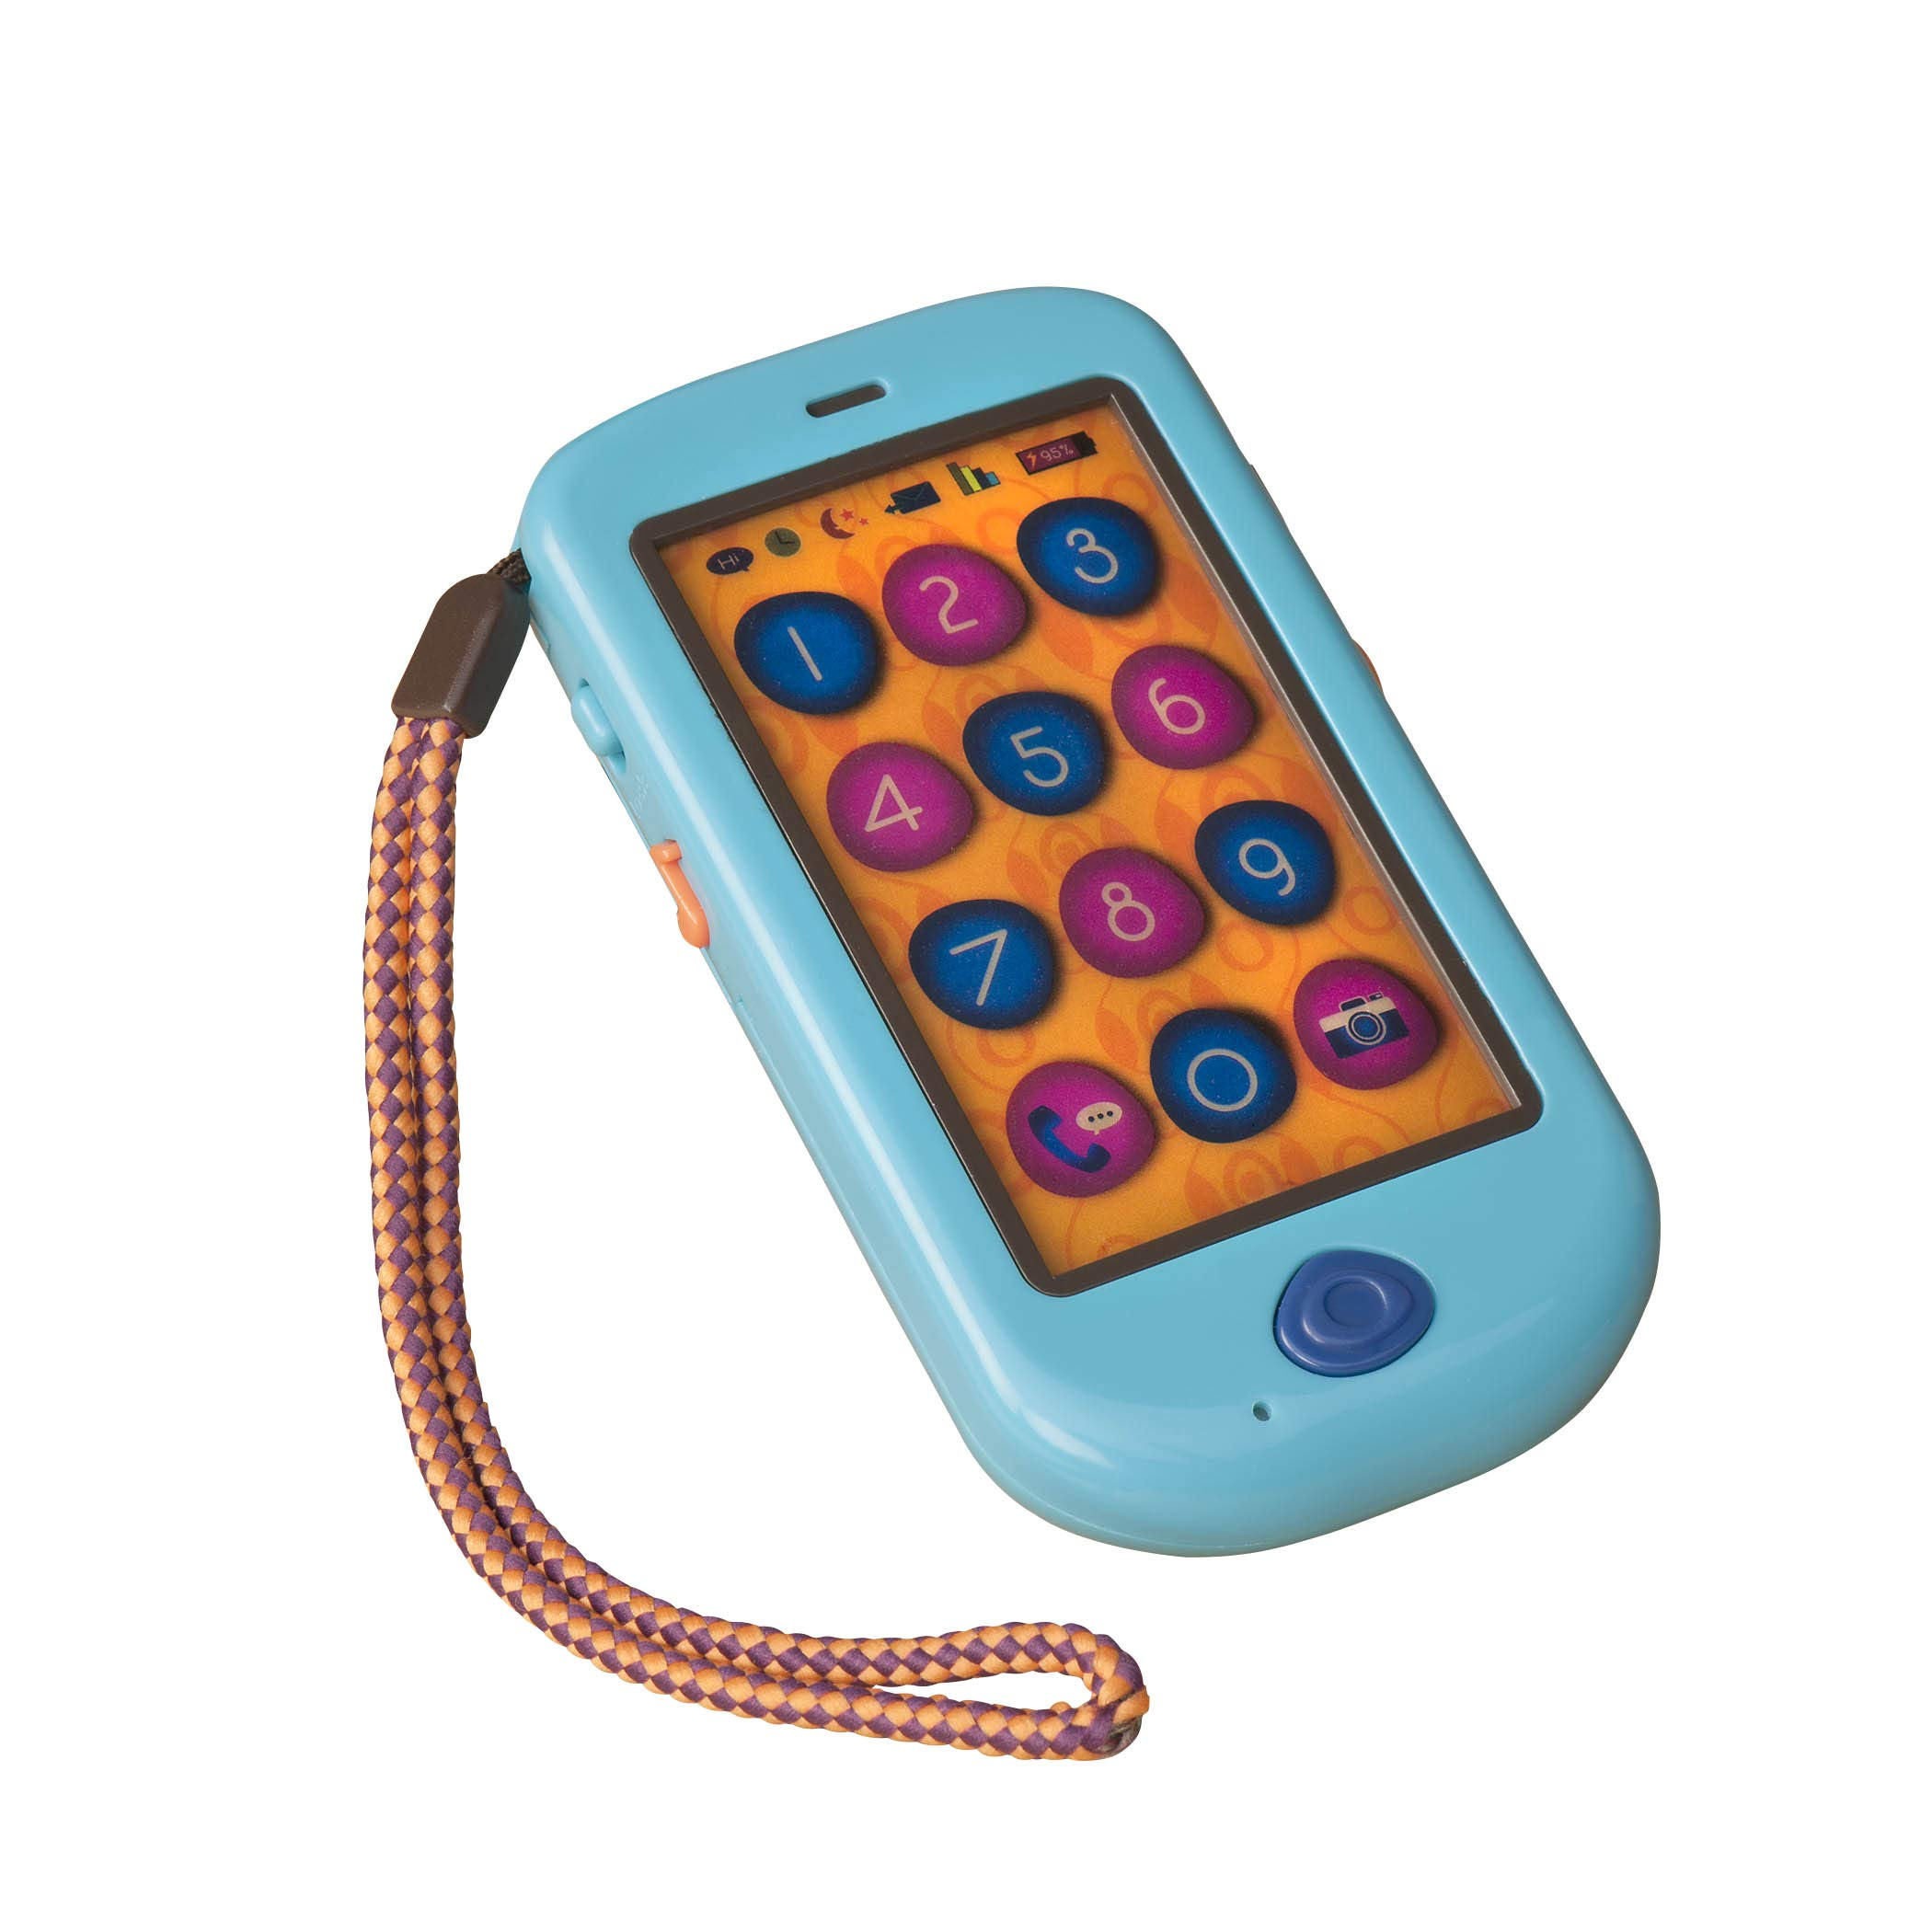 B. Toys - HiPhone Toy Smart Phone - Kids Play Phone with Sounds Music & Voice Messages - Toddler Toy Phone with Message Recorder - Non-Toxic by B. toys by Battat